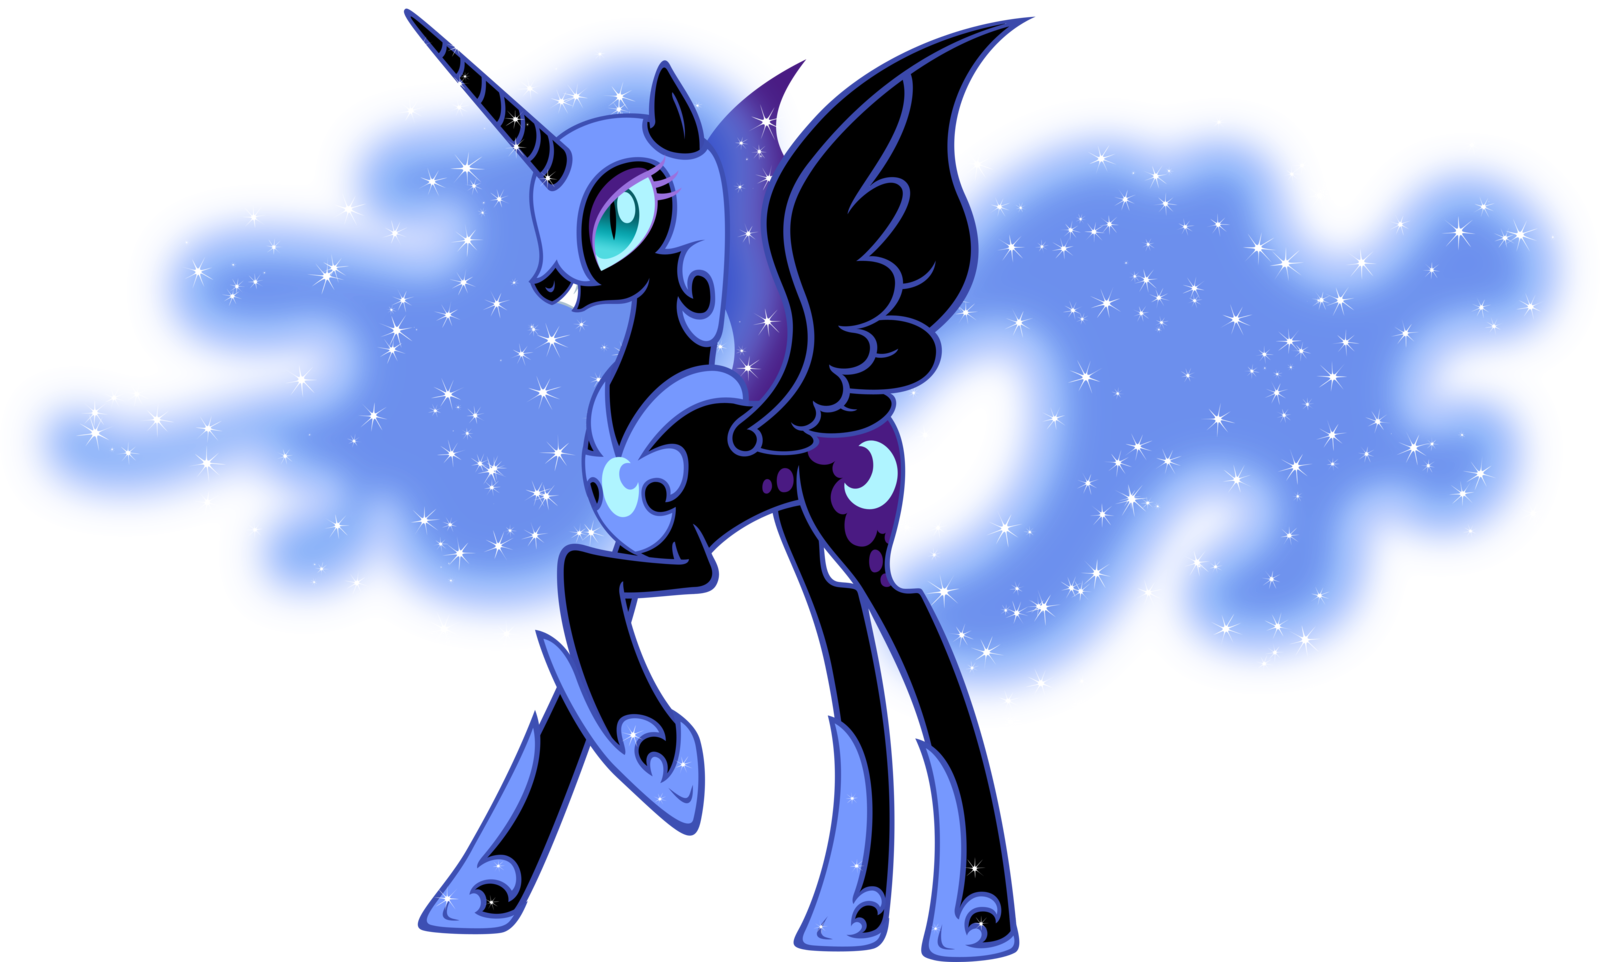 1600x962 - Nightmare Moon 16